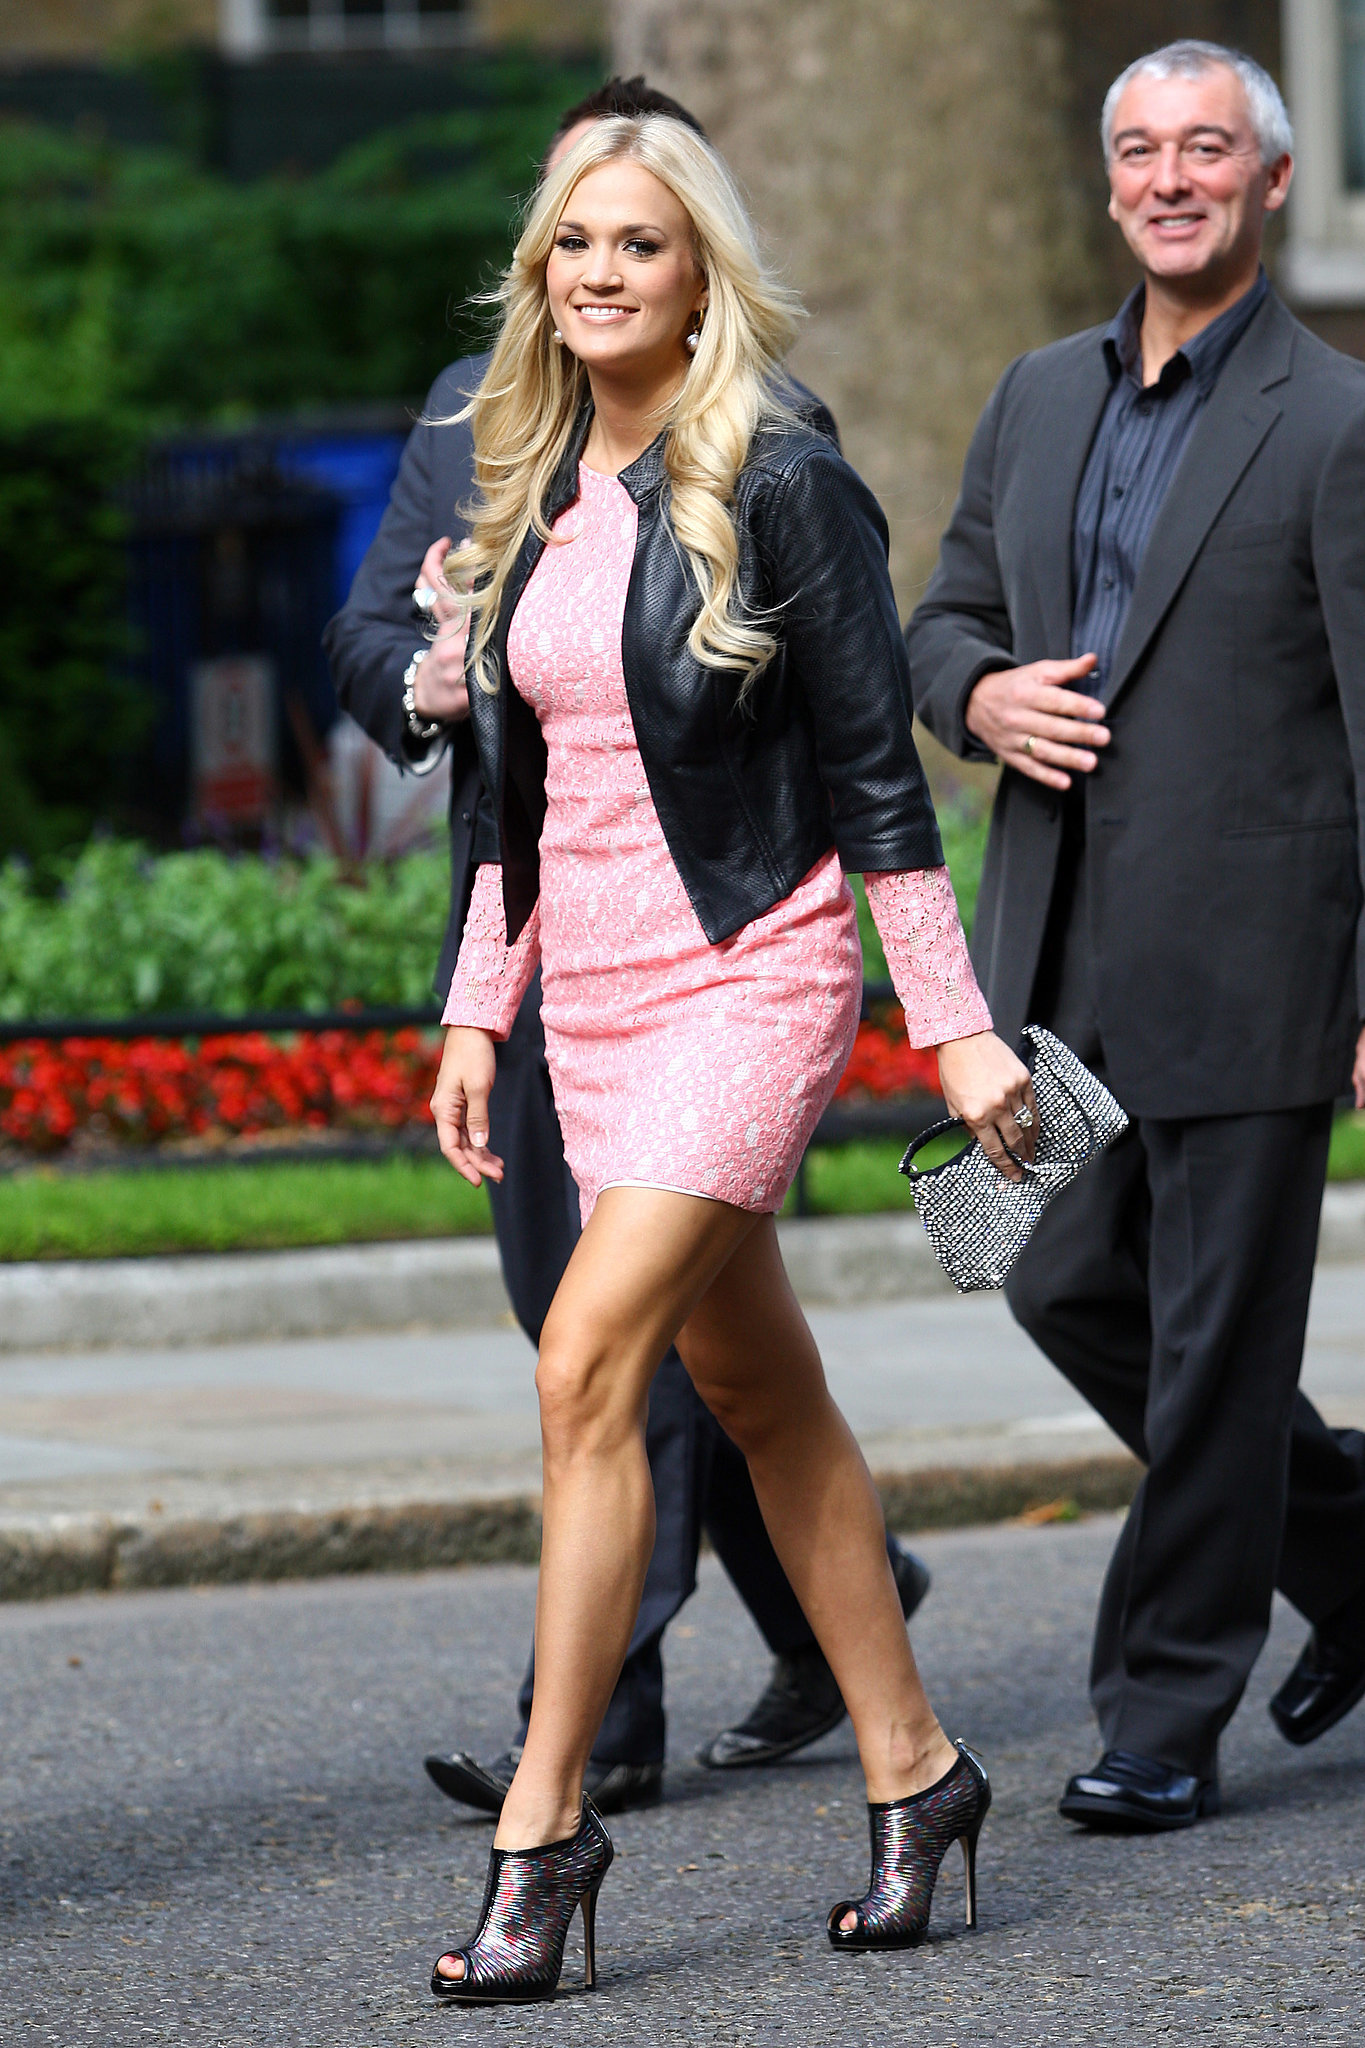 During a June 2012 London excursion, Carrie toughened up her lace confection with a cropped black leather jacket and psychedelic Jimmy Choo booties.